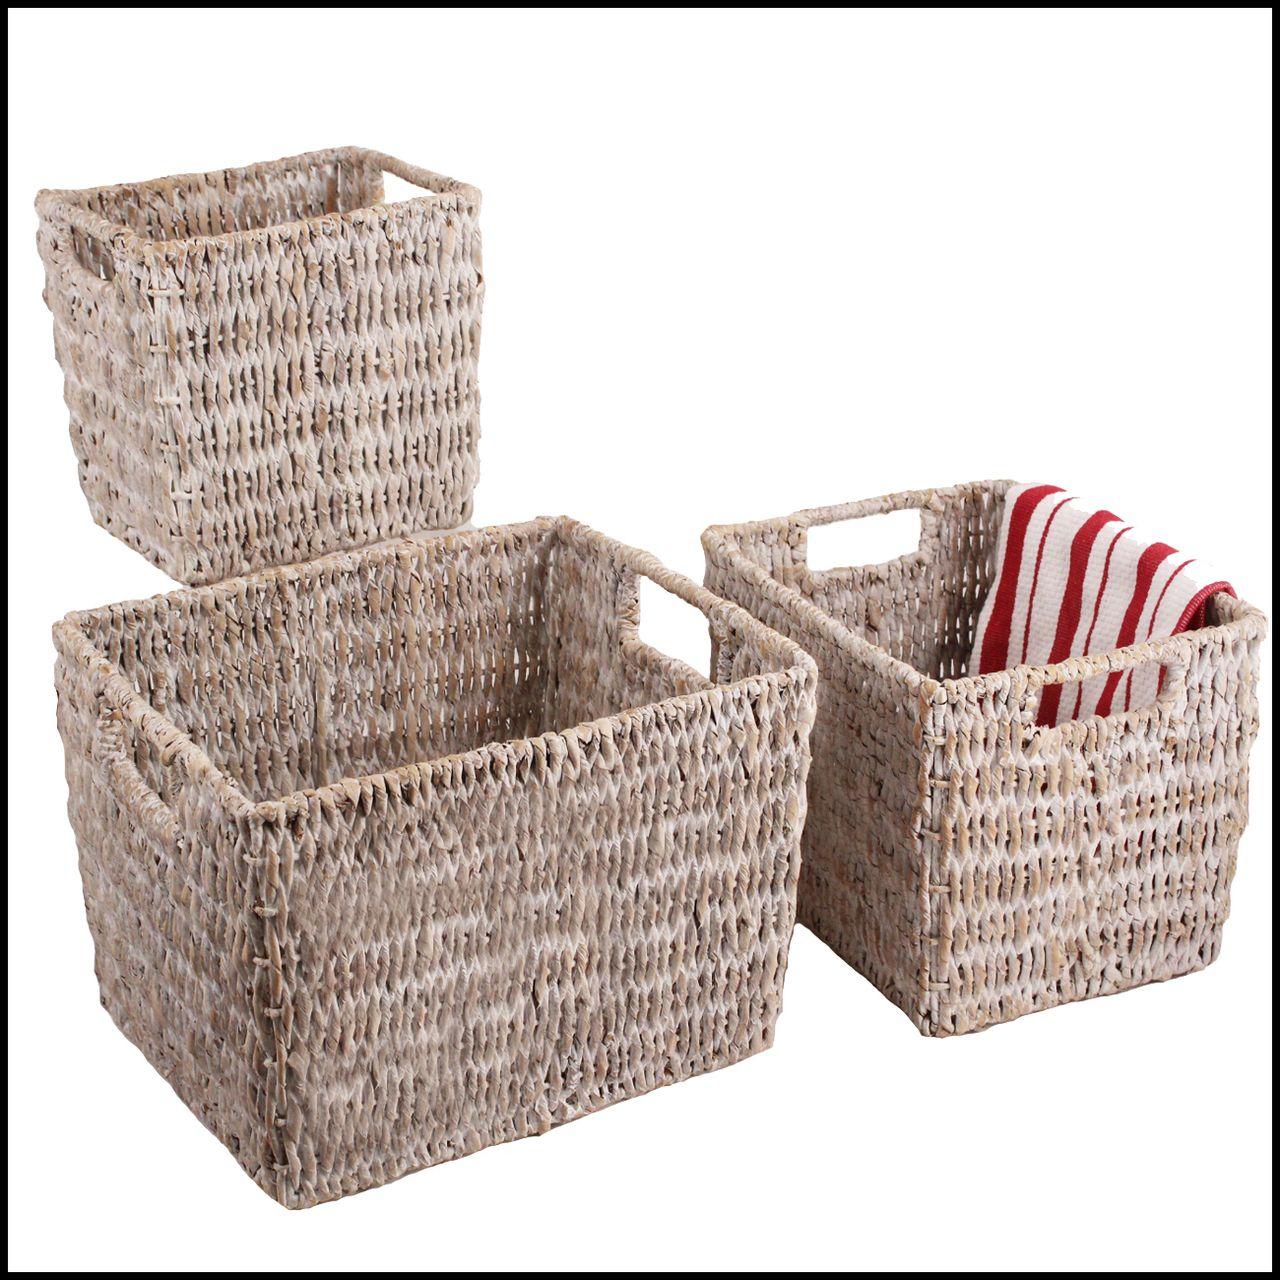 3 Piece Storage Basket Sets | WoodardandCharles.com